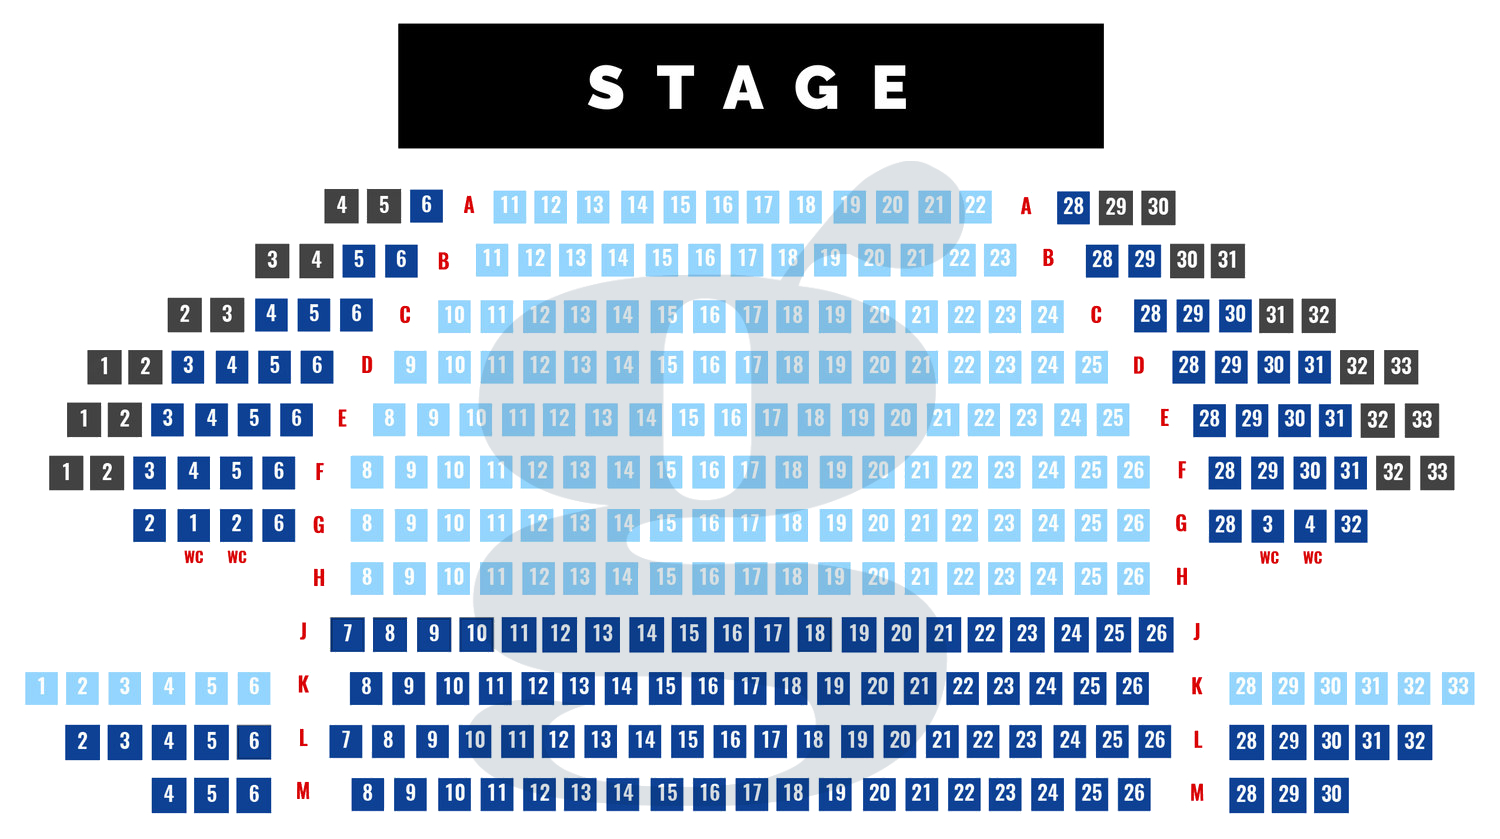 Seating Map New Watermark.jpg